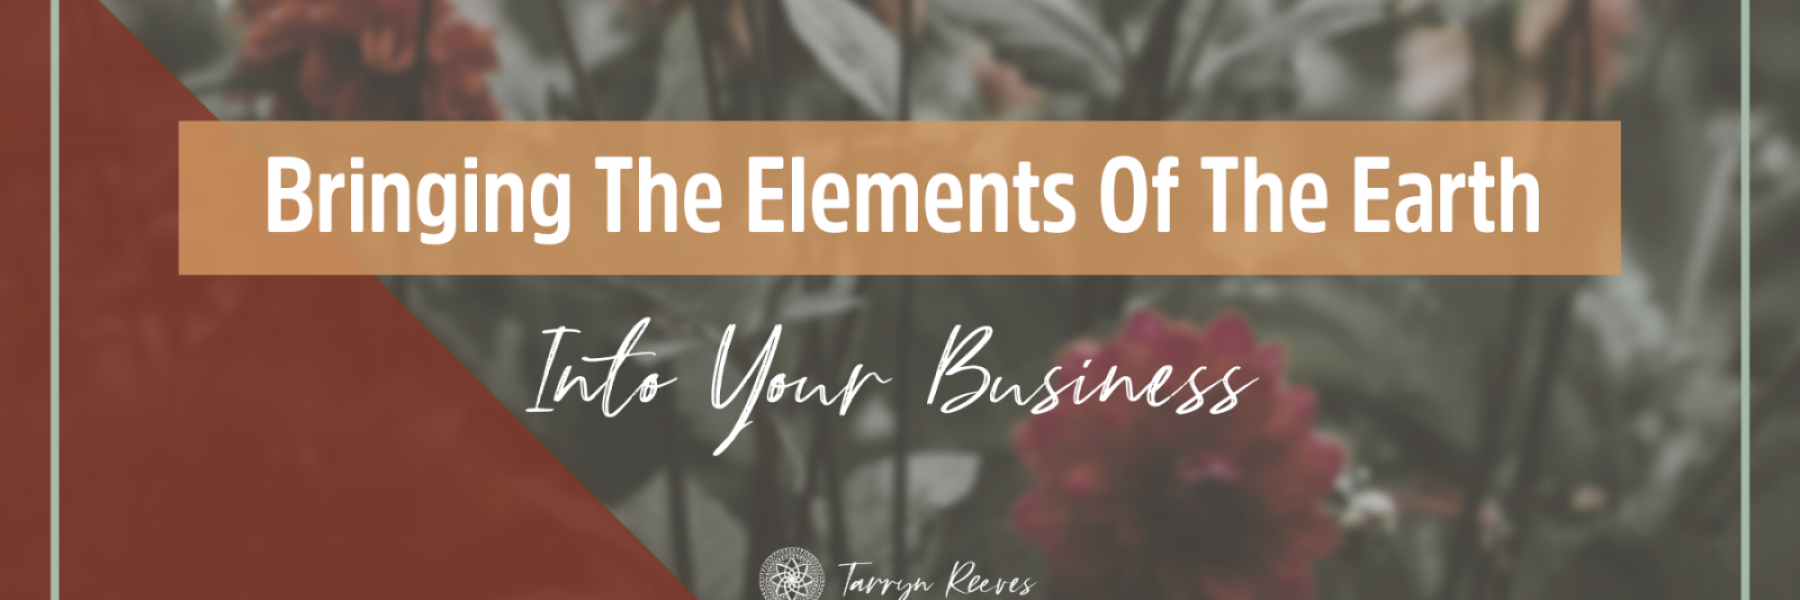 Bringing The Elements Of The Earth Into Your Business